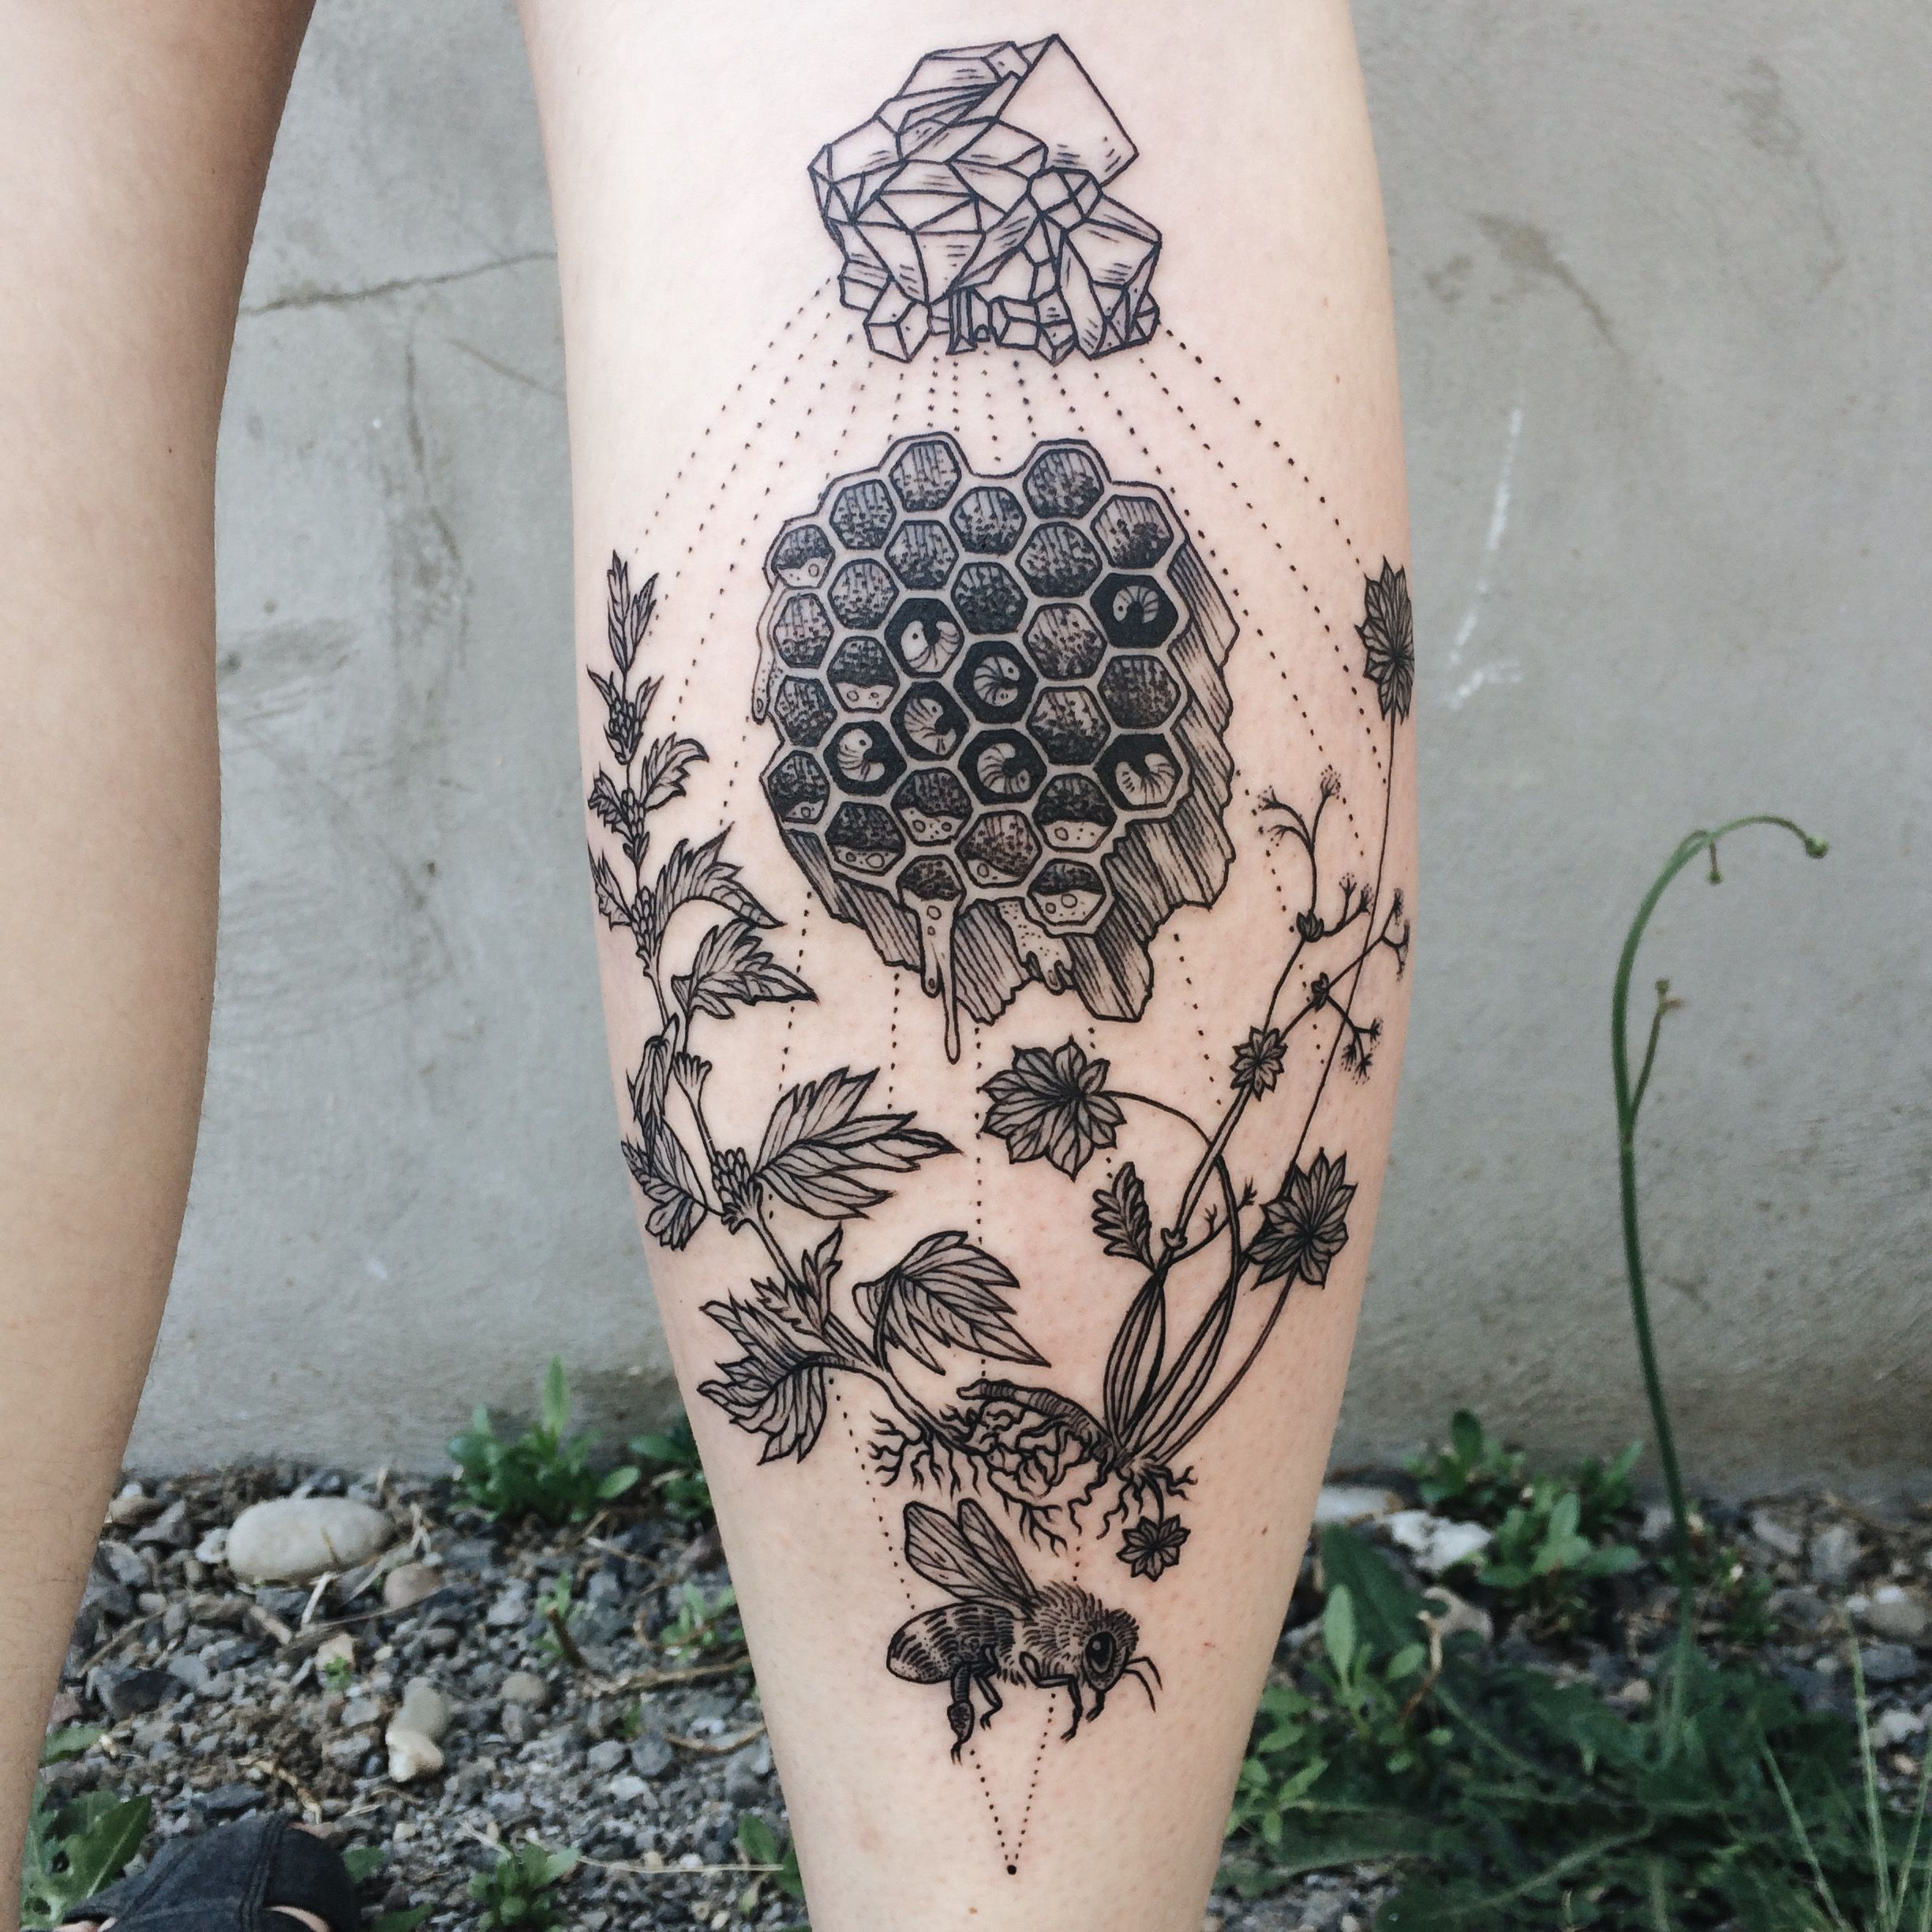 Cactus and triangle for sicily island milan okan uckun tattoo artist pony reinhardt creates delicate collisions of plants animals and elements of space and alchemy in her black line tattoos reminiscent of buycottarizona